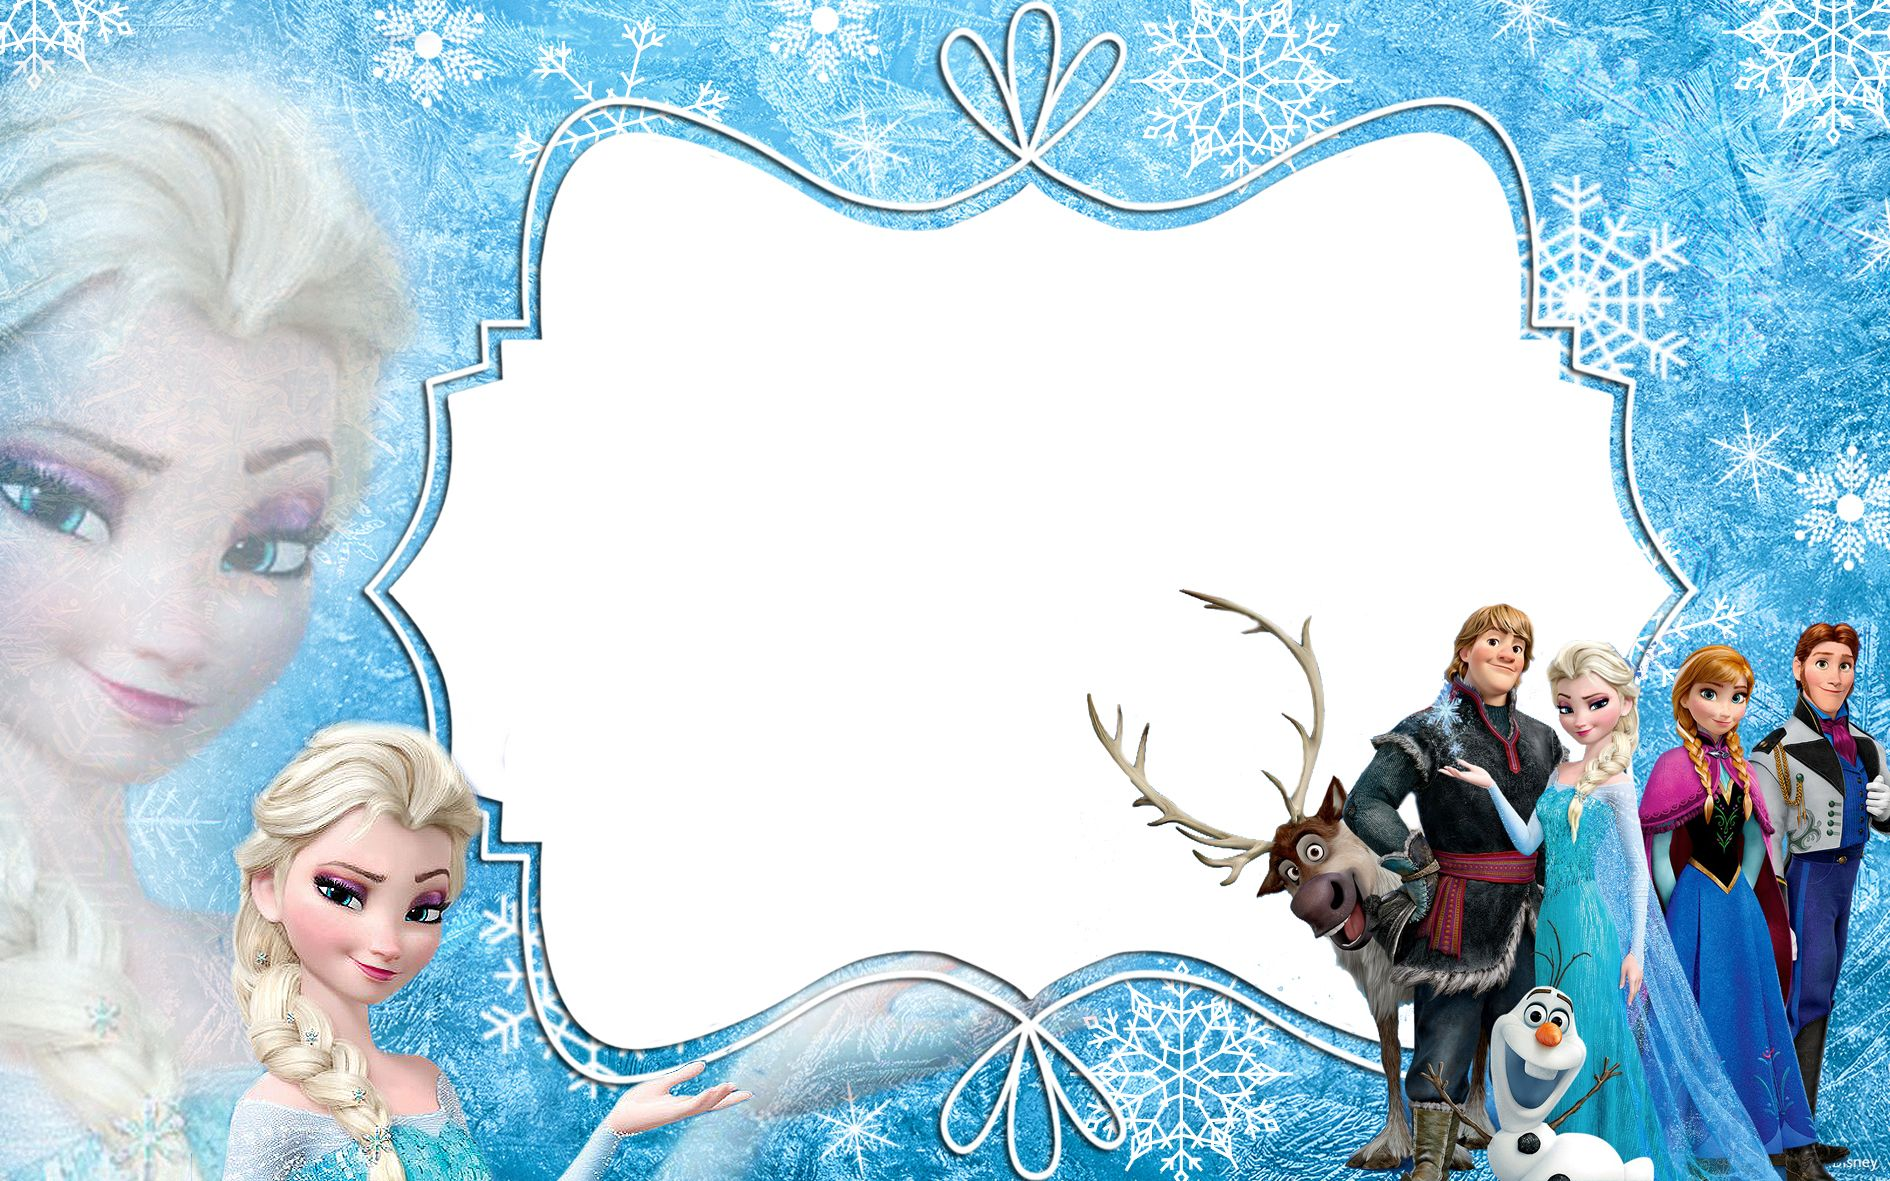 23 frozen 2013 movie wallpaper photos collections | invitation